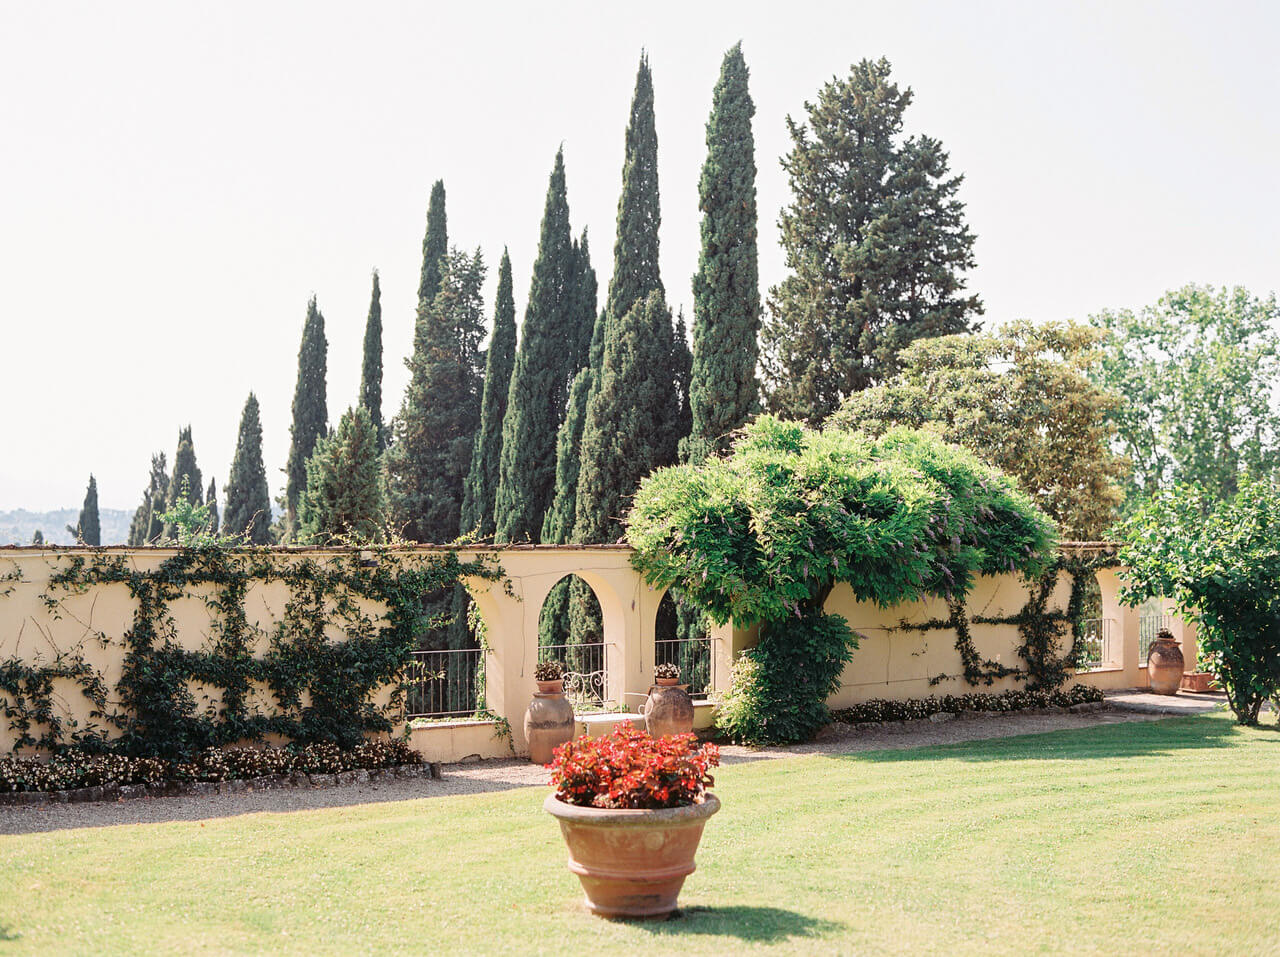 Tuscany country villa wedding setting and Cyprus trees at Villa Agape Art Hotel